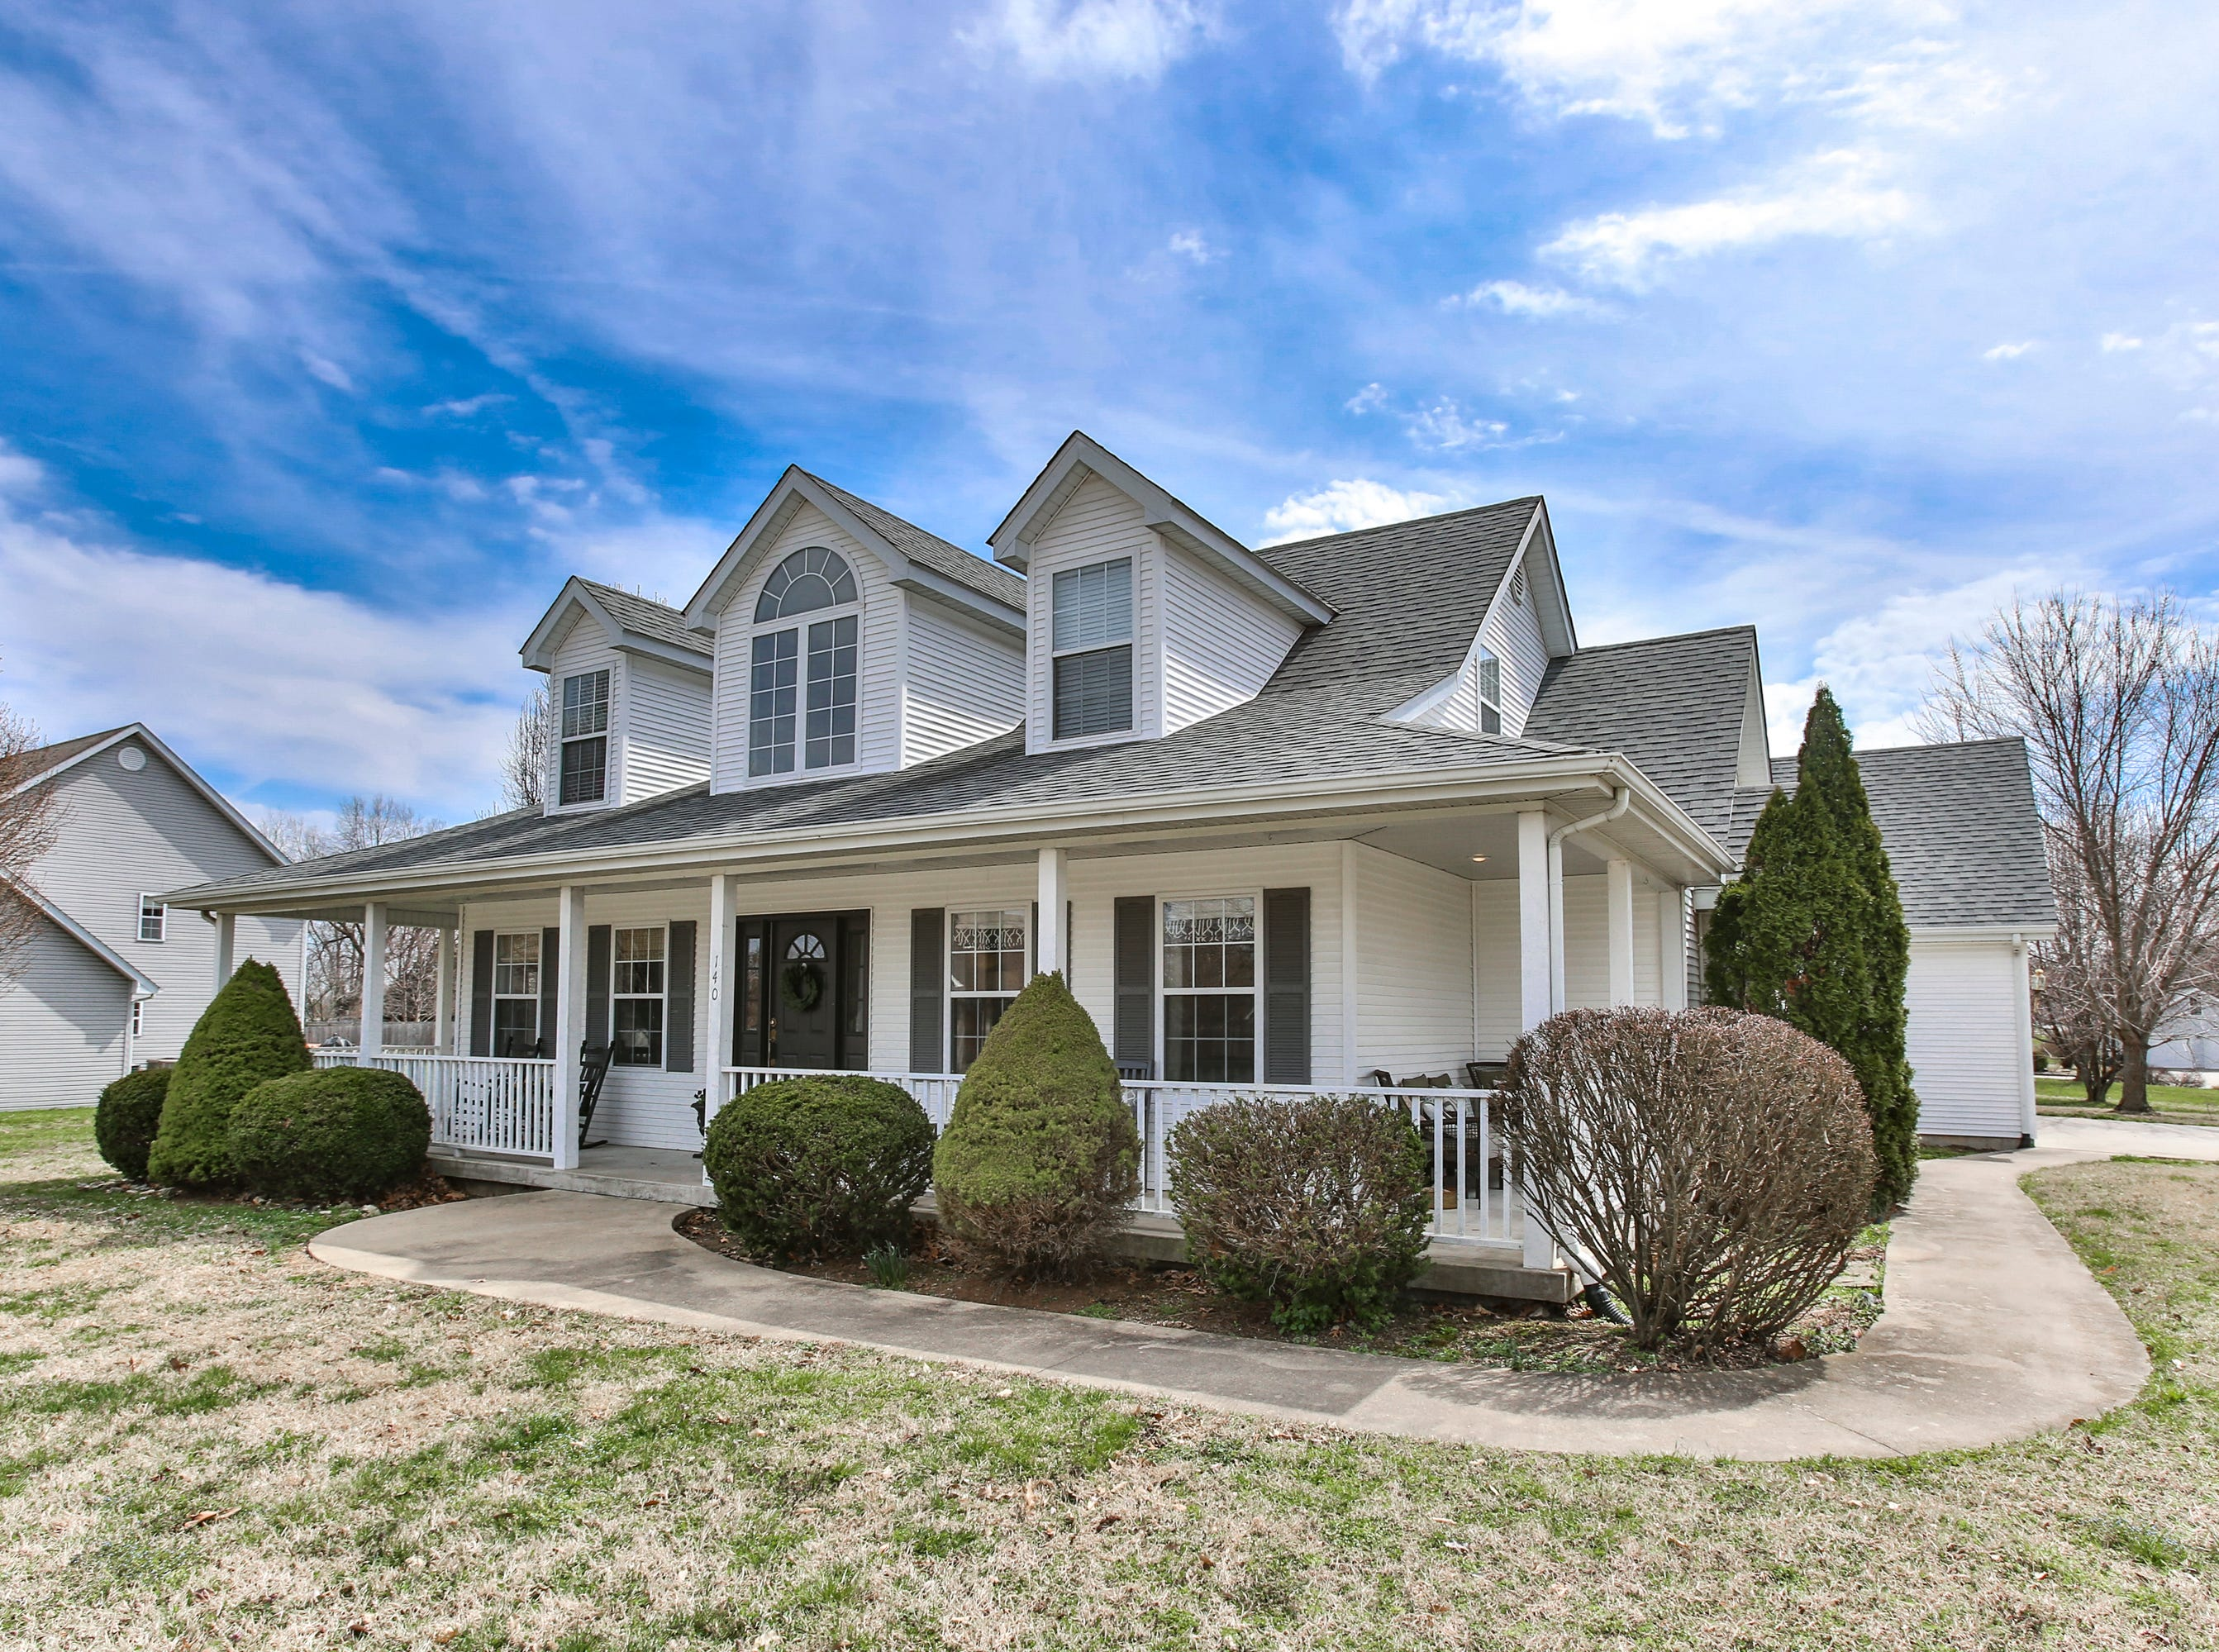 The Bolivar home of Darren, Lisa, Lily and Lauren Crowder on March 27, 2019.